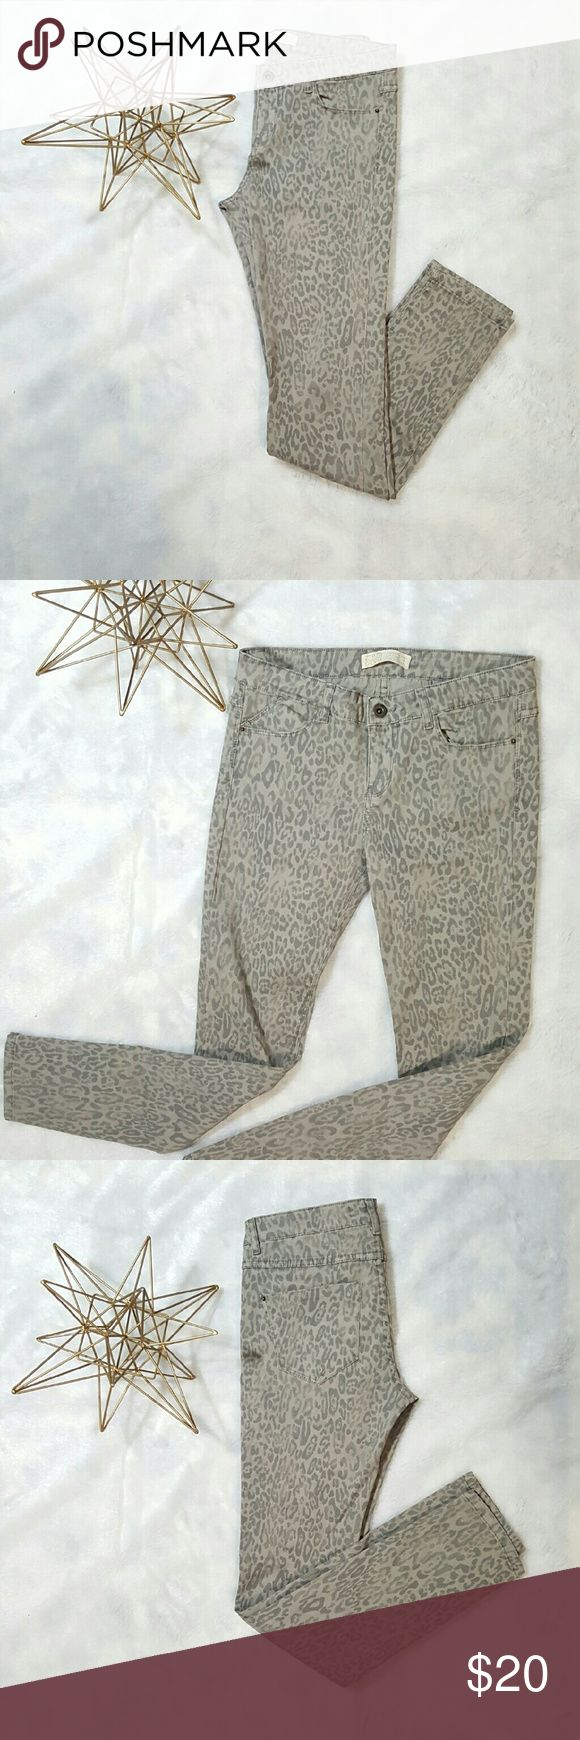 Zara Light Leopard/Cheetah Print Skinny Jeans 4 Super CUTE jeans from Zara. Size 4. Skinny stretch jeans. Color is taupe and greyish. Awesome condition.  Send me an offer!! Zara Jeans Skinny